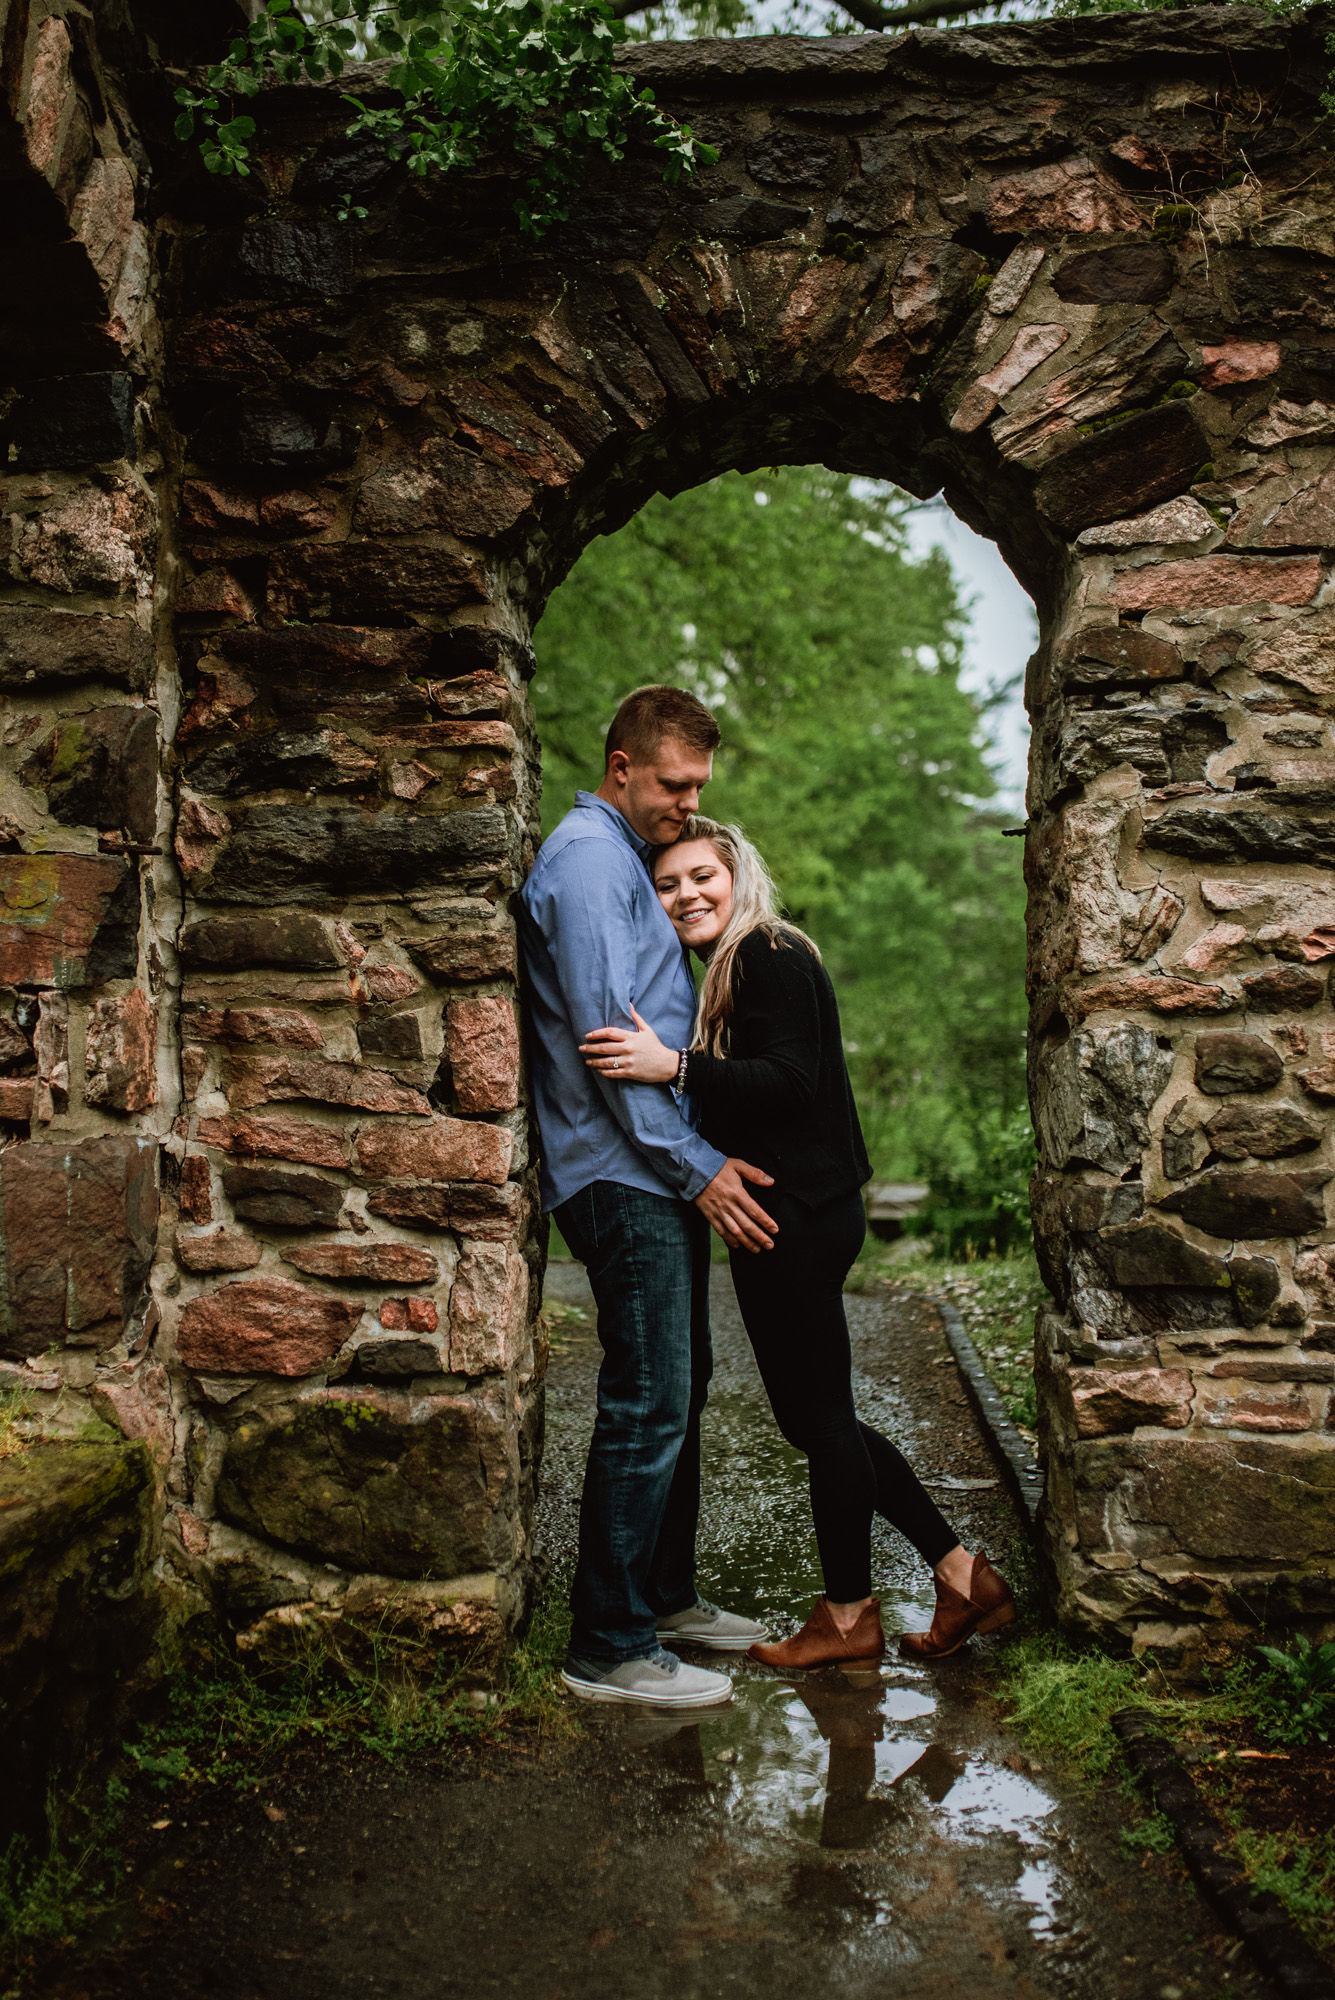 philadelphia-wedding-photographer-ridley-creek-state-park-media-pennsylvania-pa-engagement-photos-new-york-city-kylewillisphoto-kyle-willis-hunting-hill-mansion